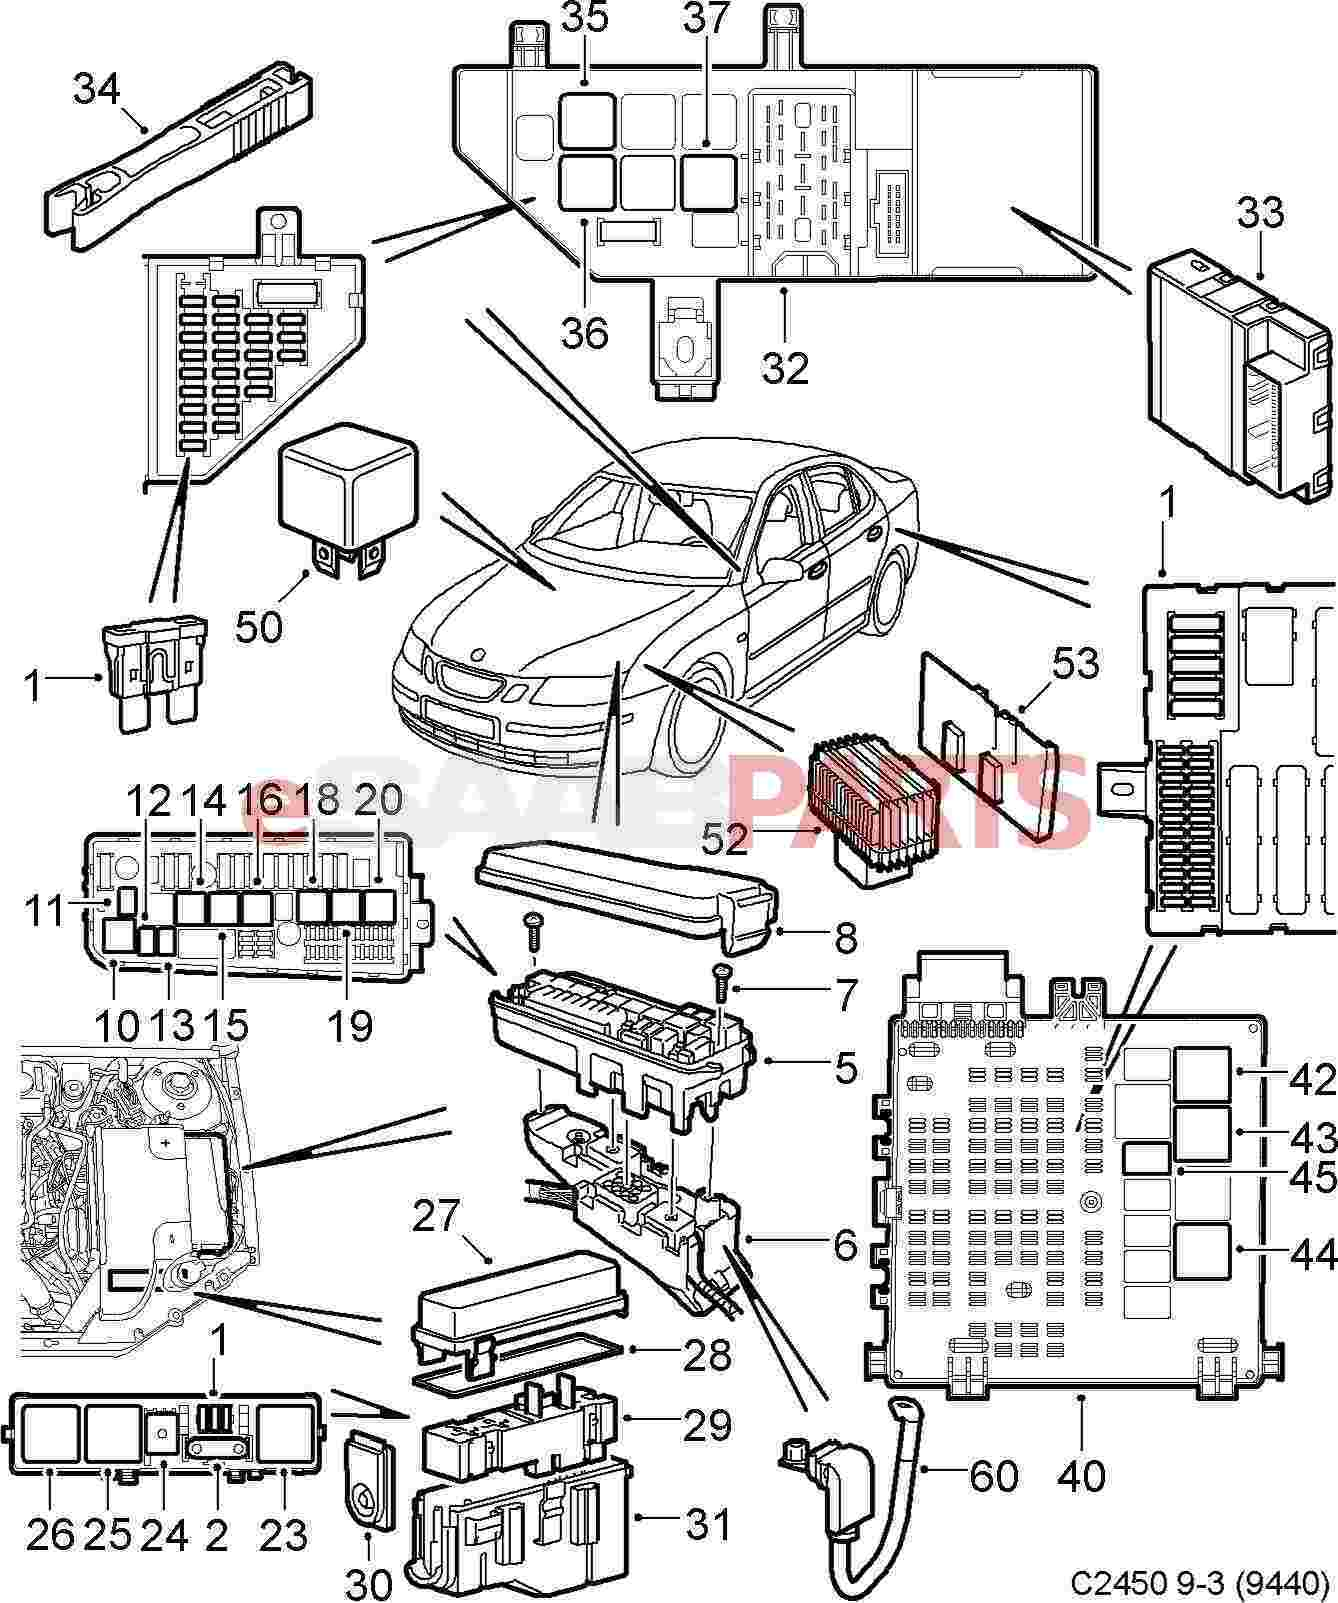 hight resolution of saab 9 3 washer pump diagram wiring diagrams saab 9 3 washer pump diagram